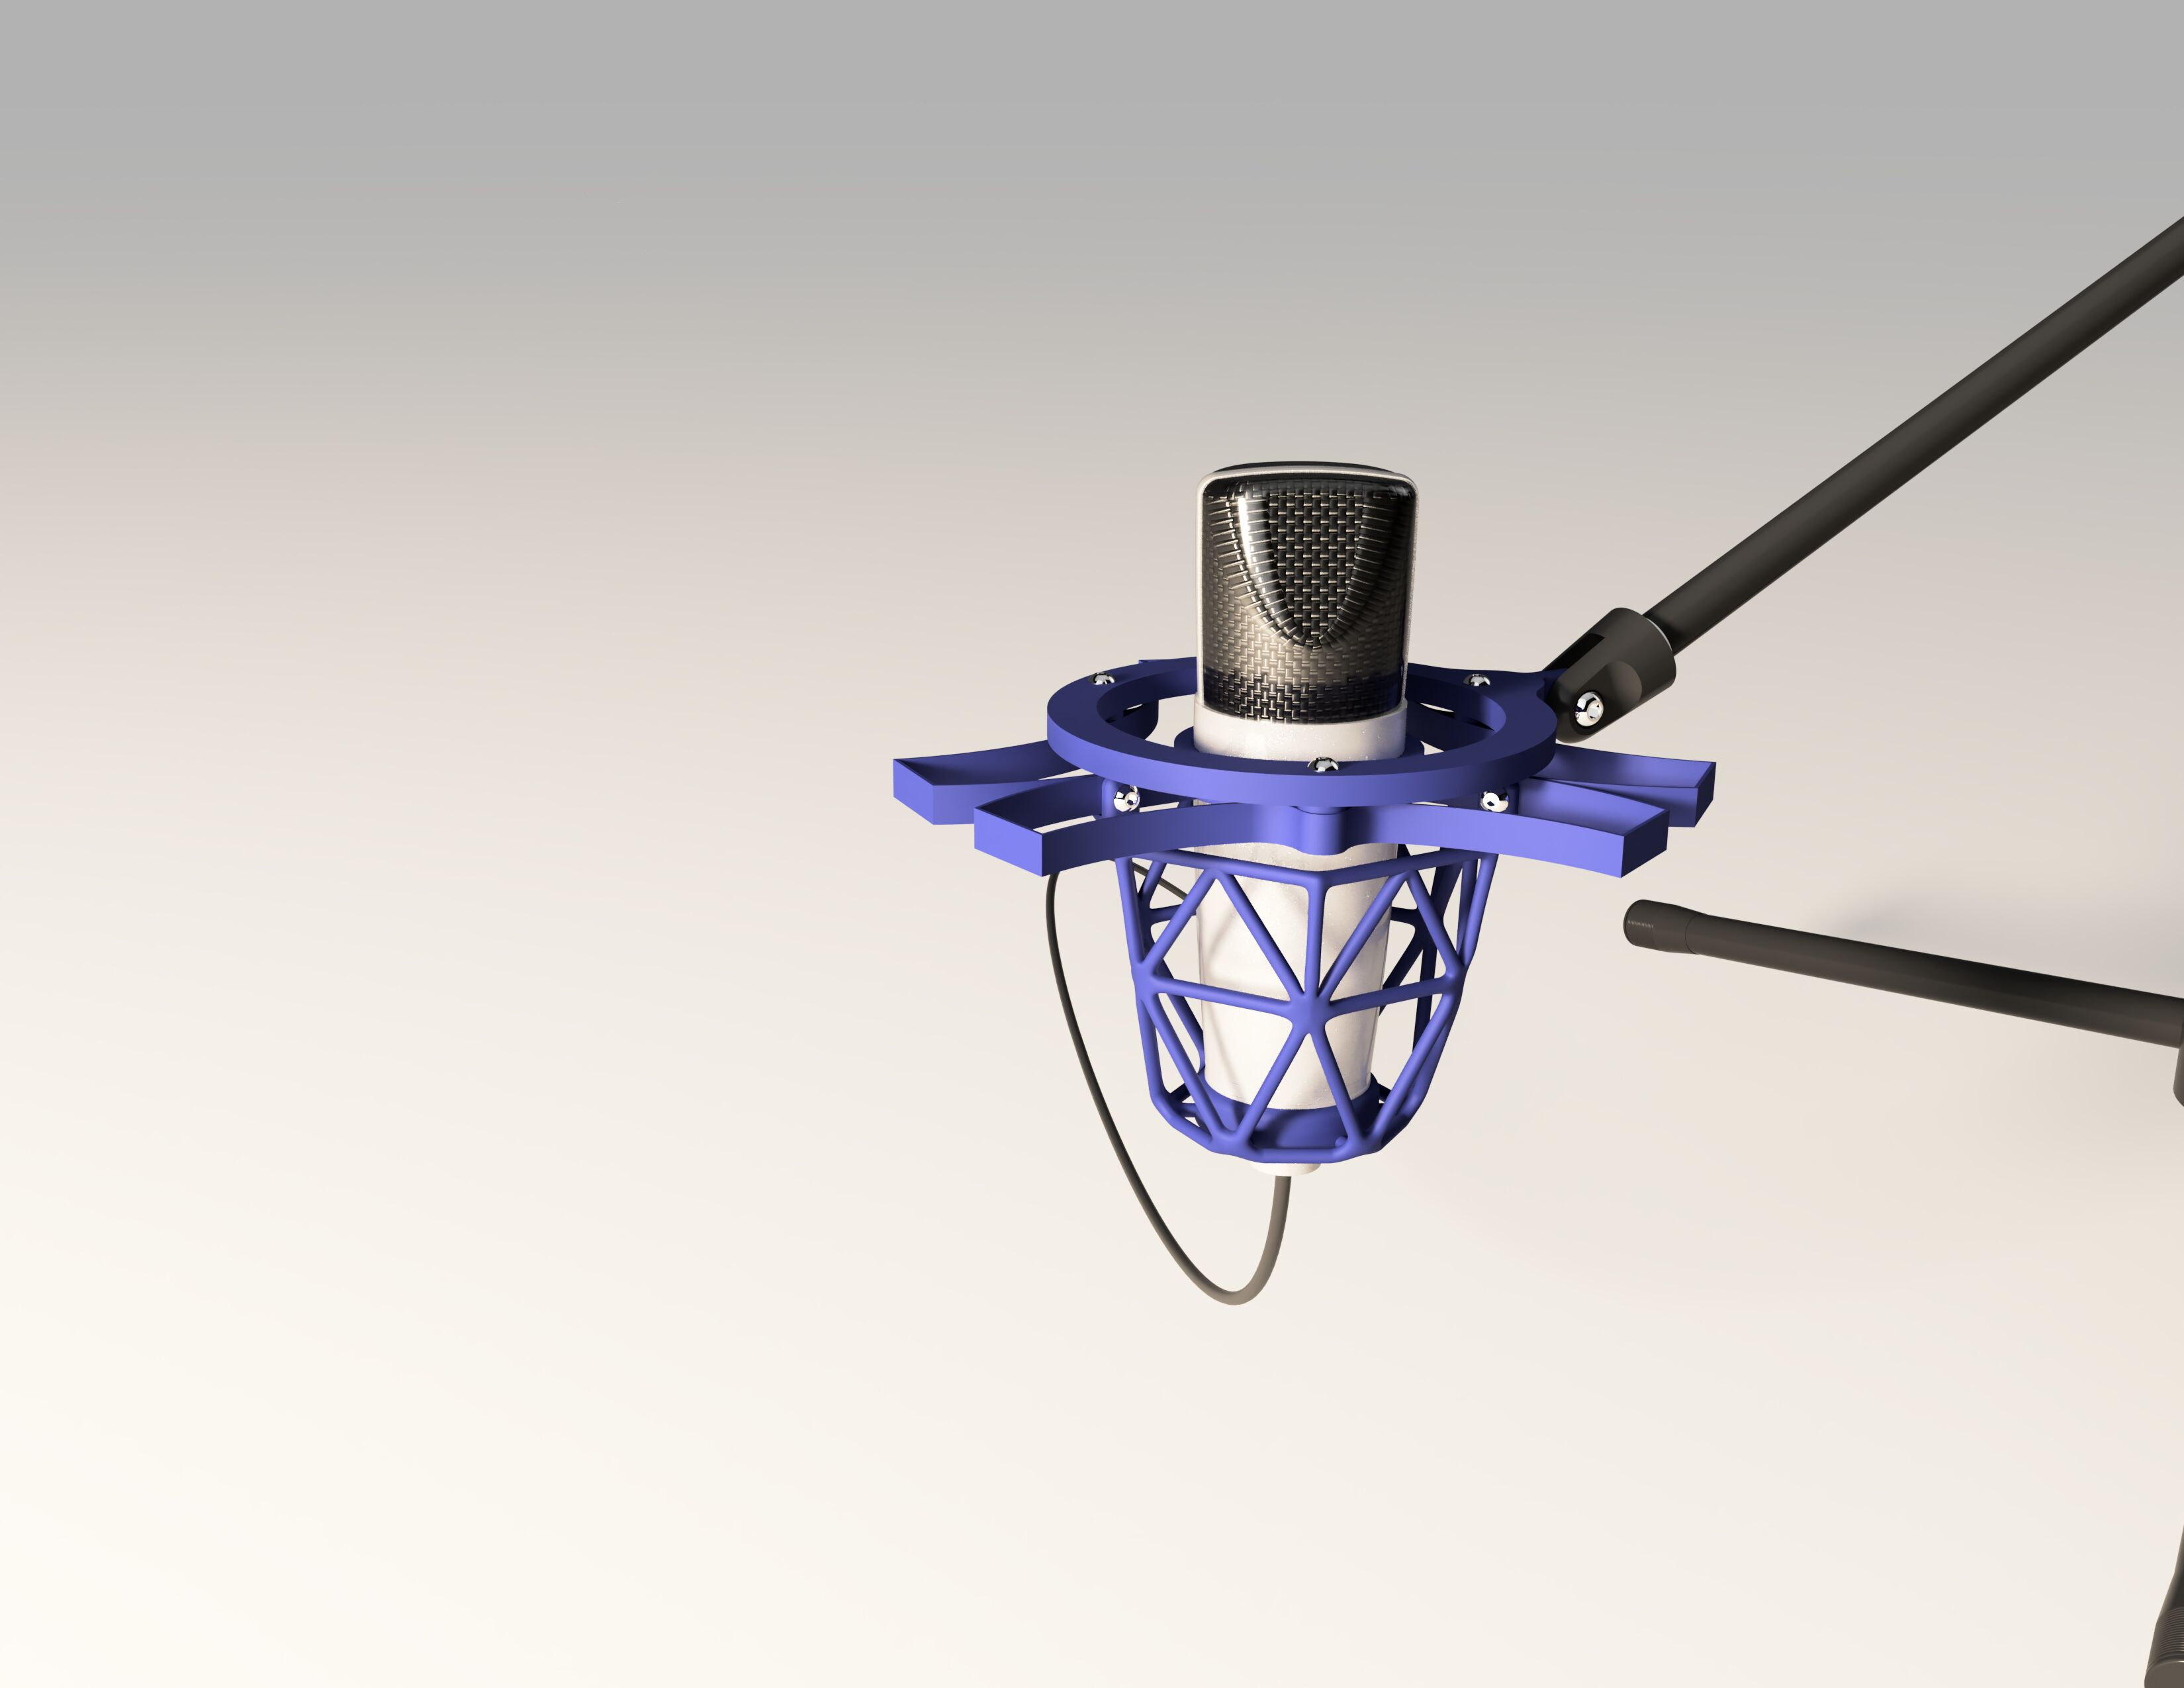 Microphone-shock-mount-assembly-2020-jun-23-12-53-12pm-000-customizedview913346616-png-3500-3500